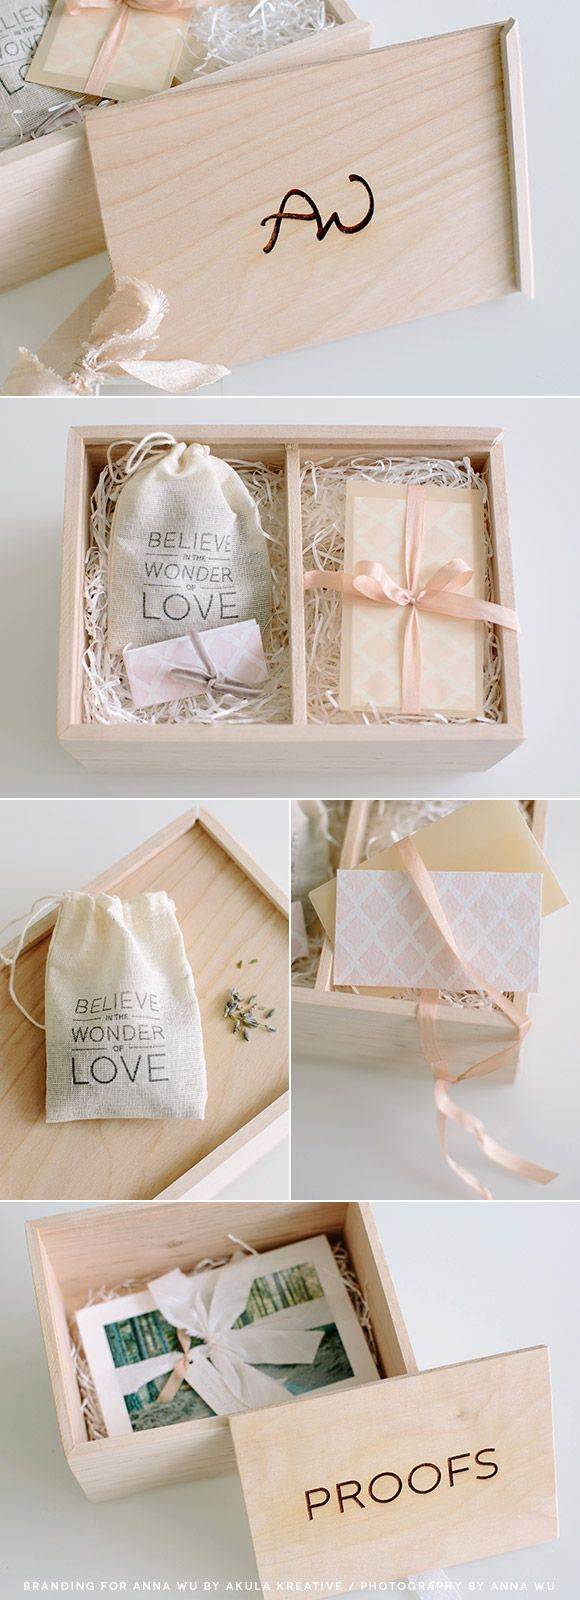 Anna Wu Photography Packaging Suite // engraved wooden box, branded gift tags and thank you card, silk and velvet ribbons...plus a hidden compartment for prints // Akula Kreative